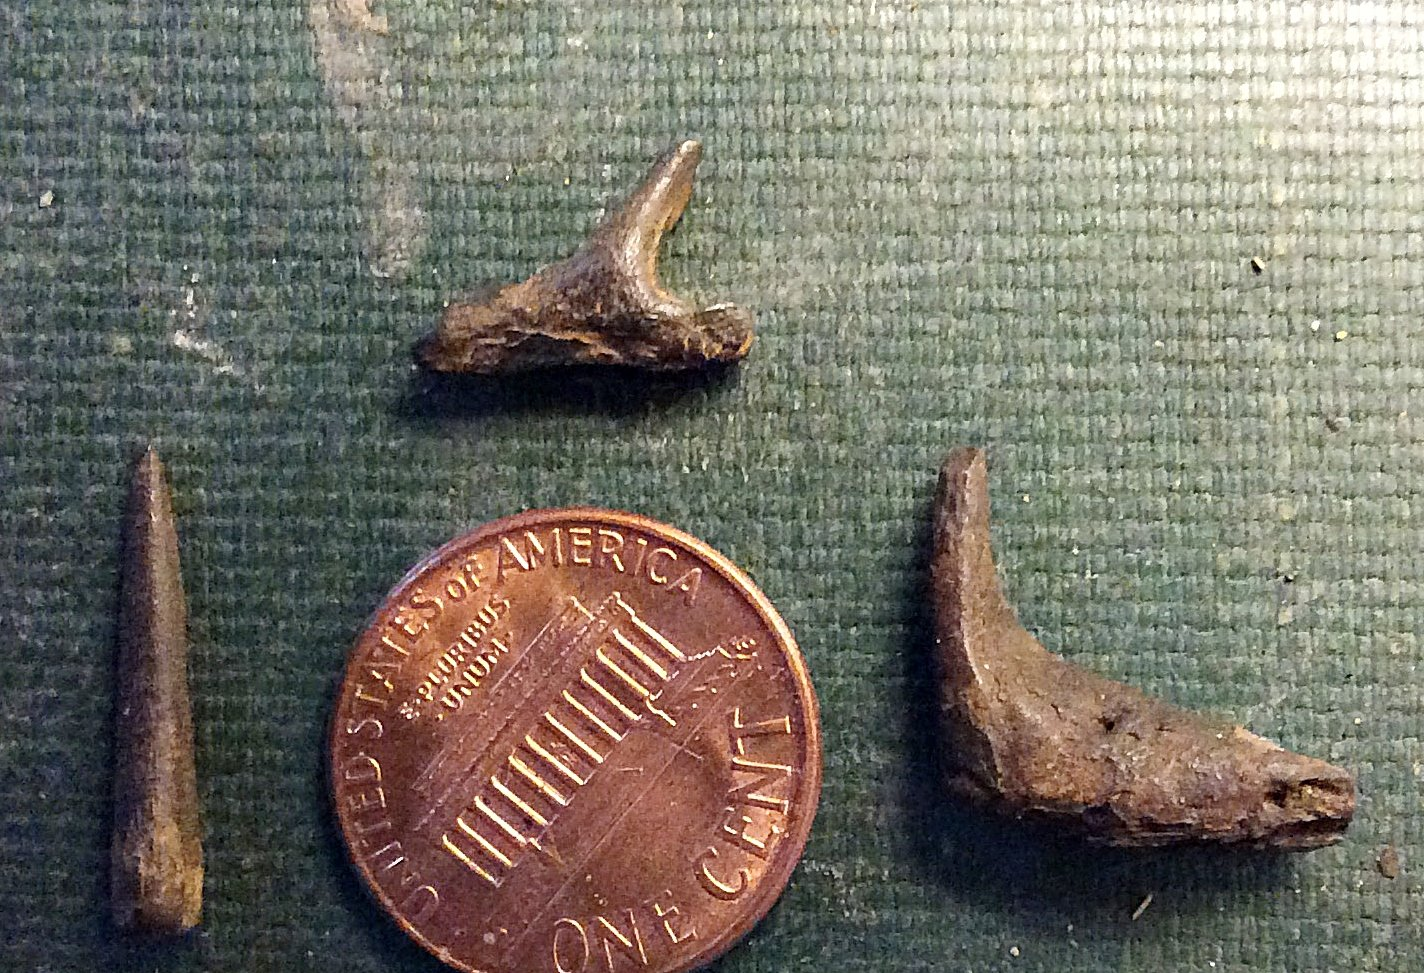 Enchodus from the Wenonah Formation, Monmouth CO., N.J.